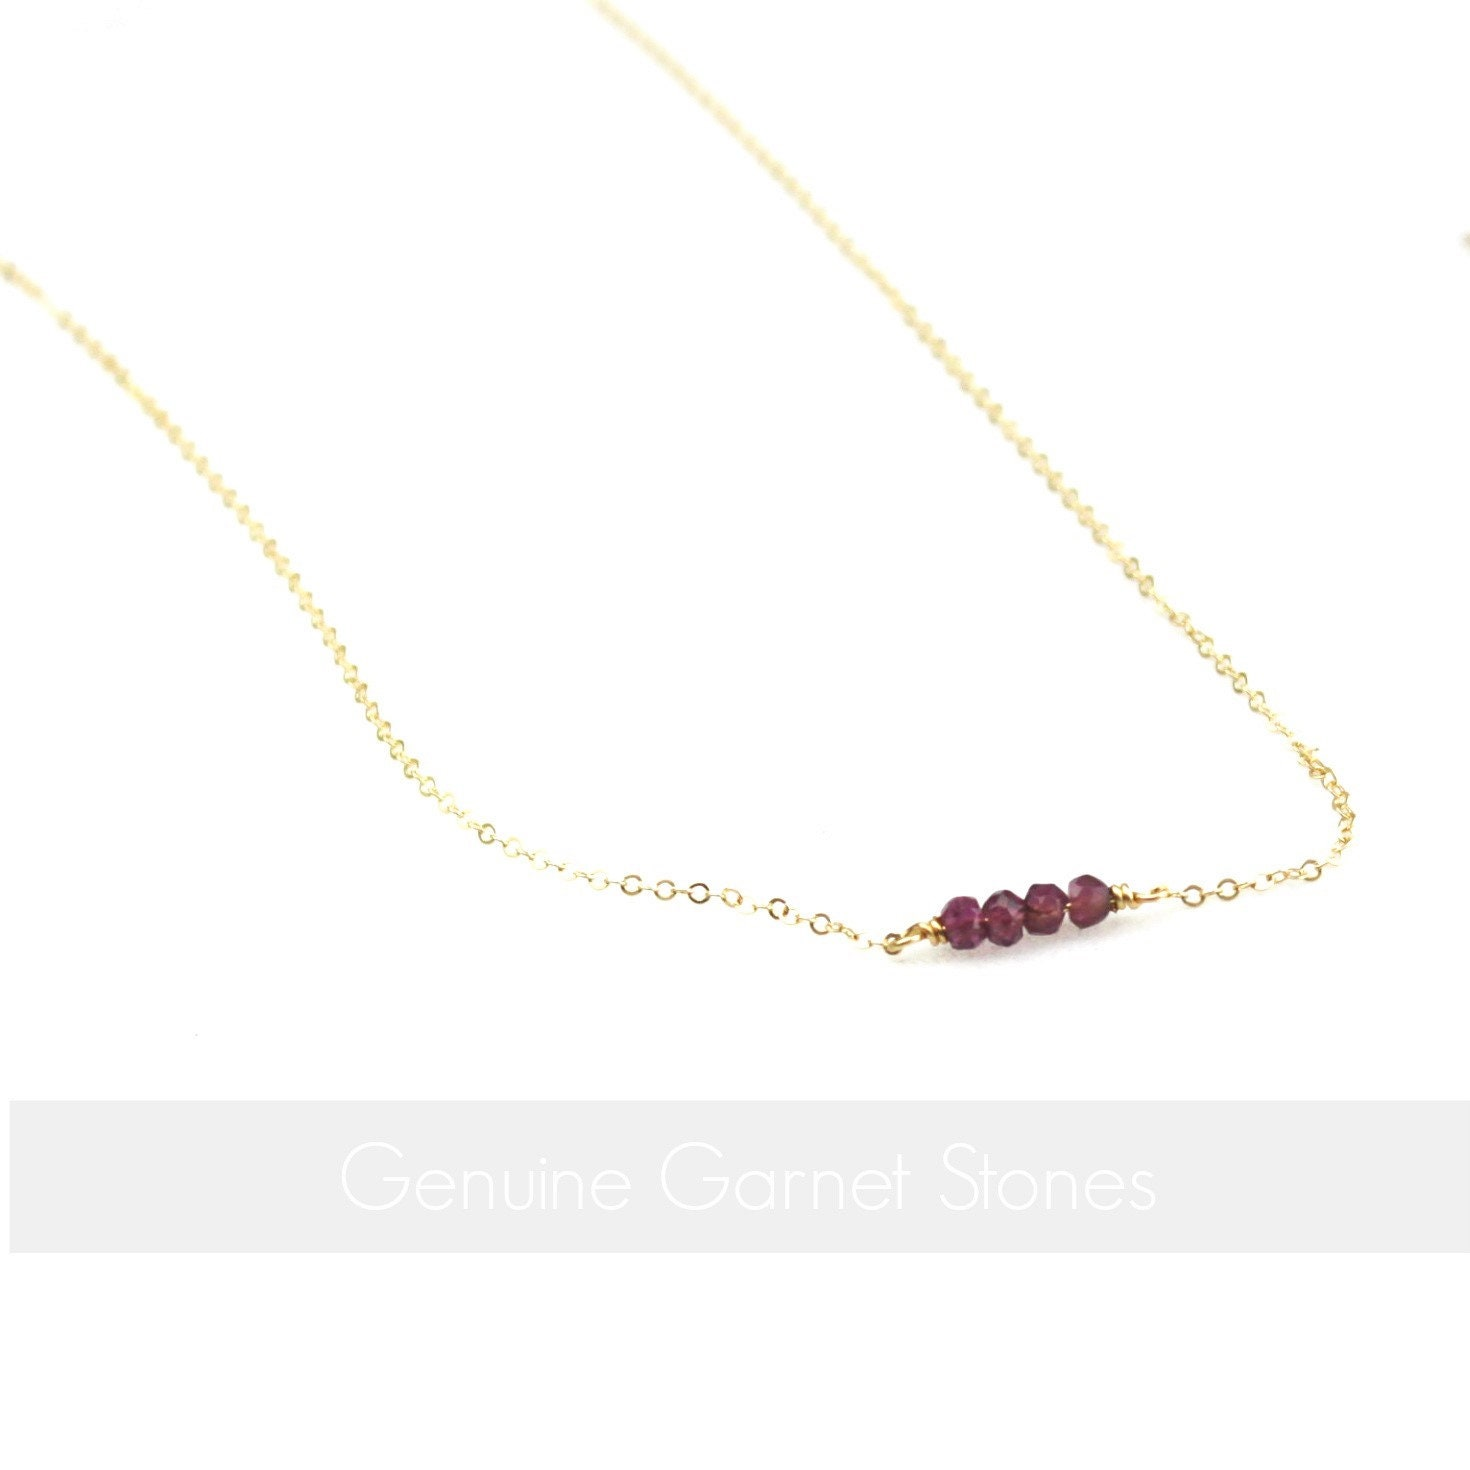 Gifts Women January Birthday Birthstone The Silver Wren Jewelry Necklace Gift For Her Garnet